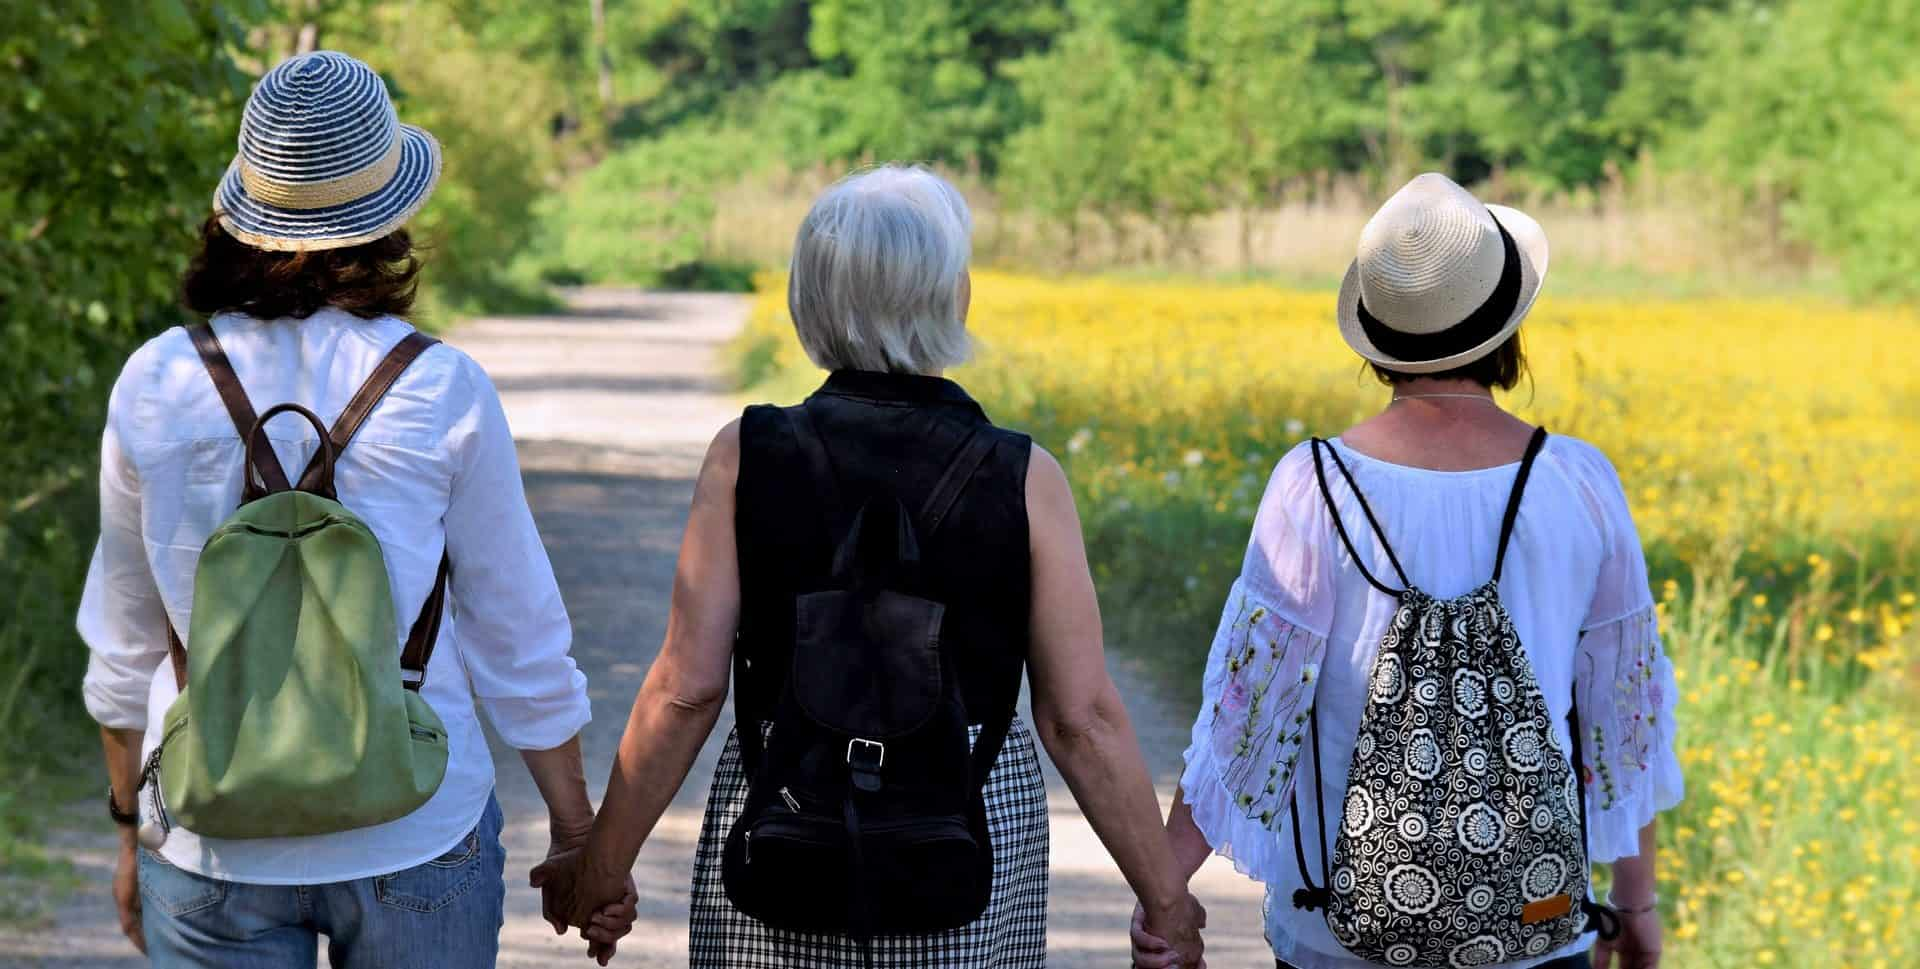 three women friends walking hand in hand down road